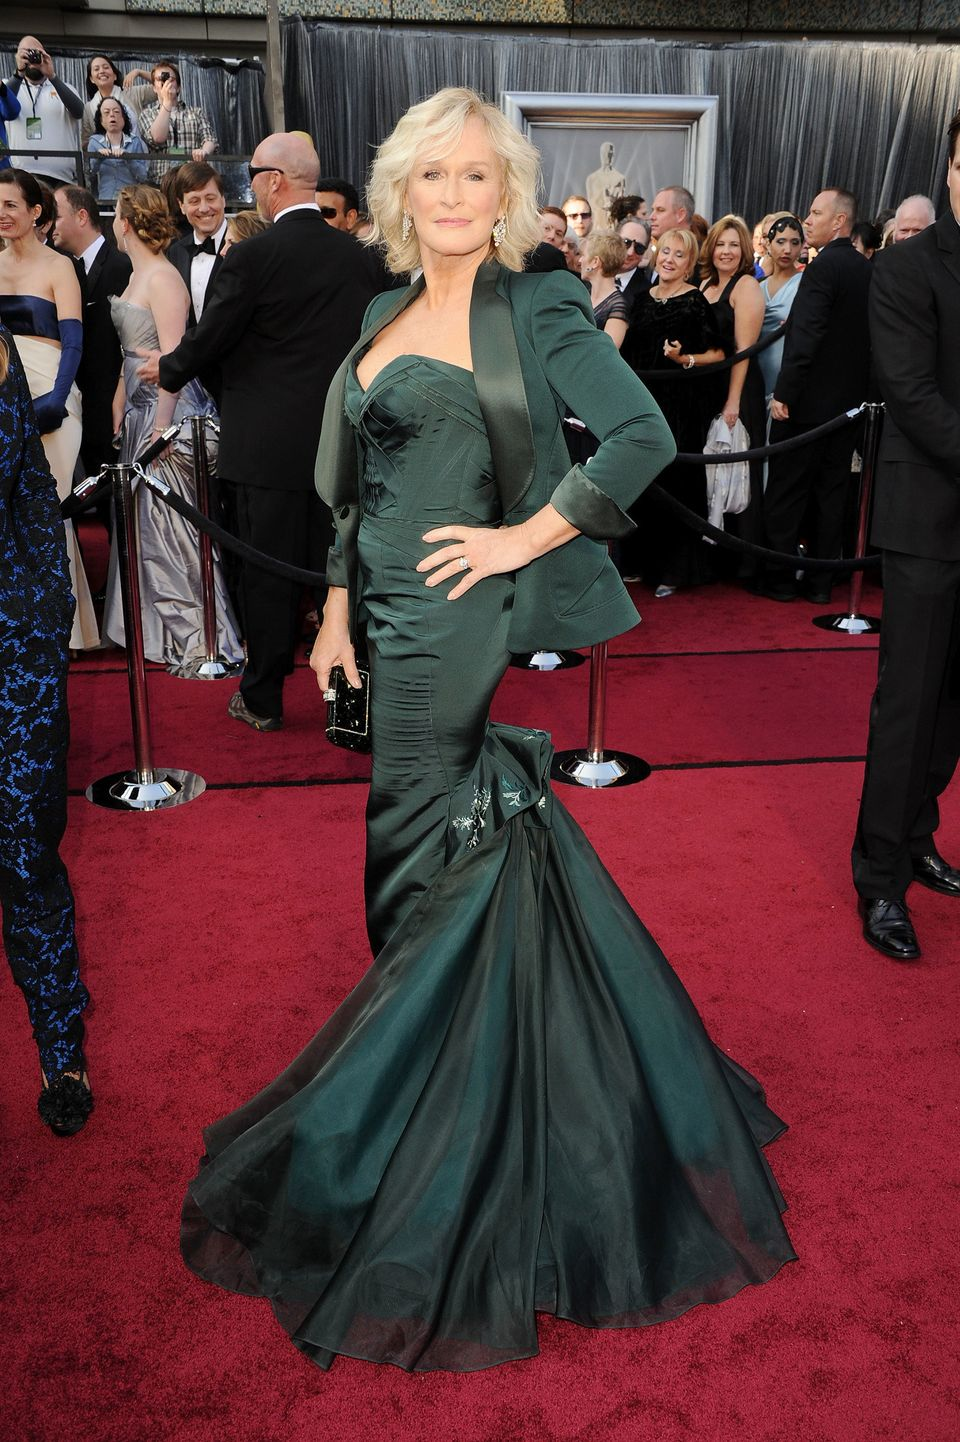 Glenn walking the red carpet at the 84th annual Academy Awards show, where she was nominated for her...